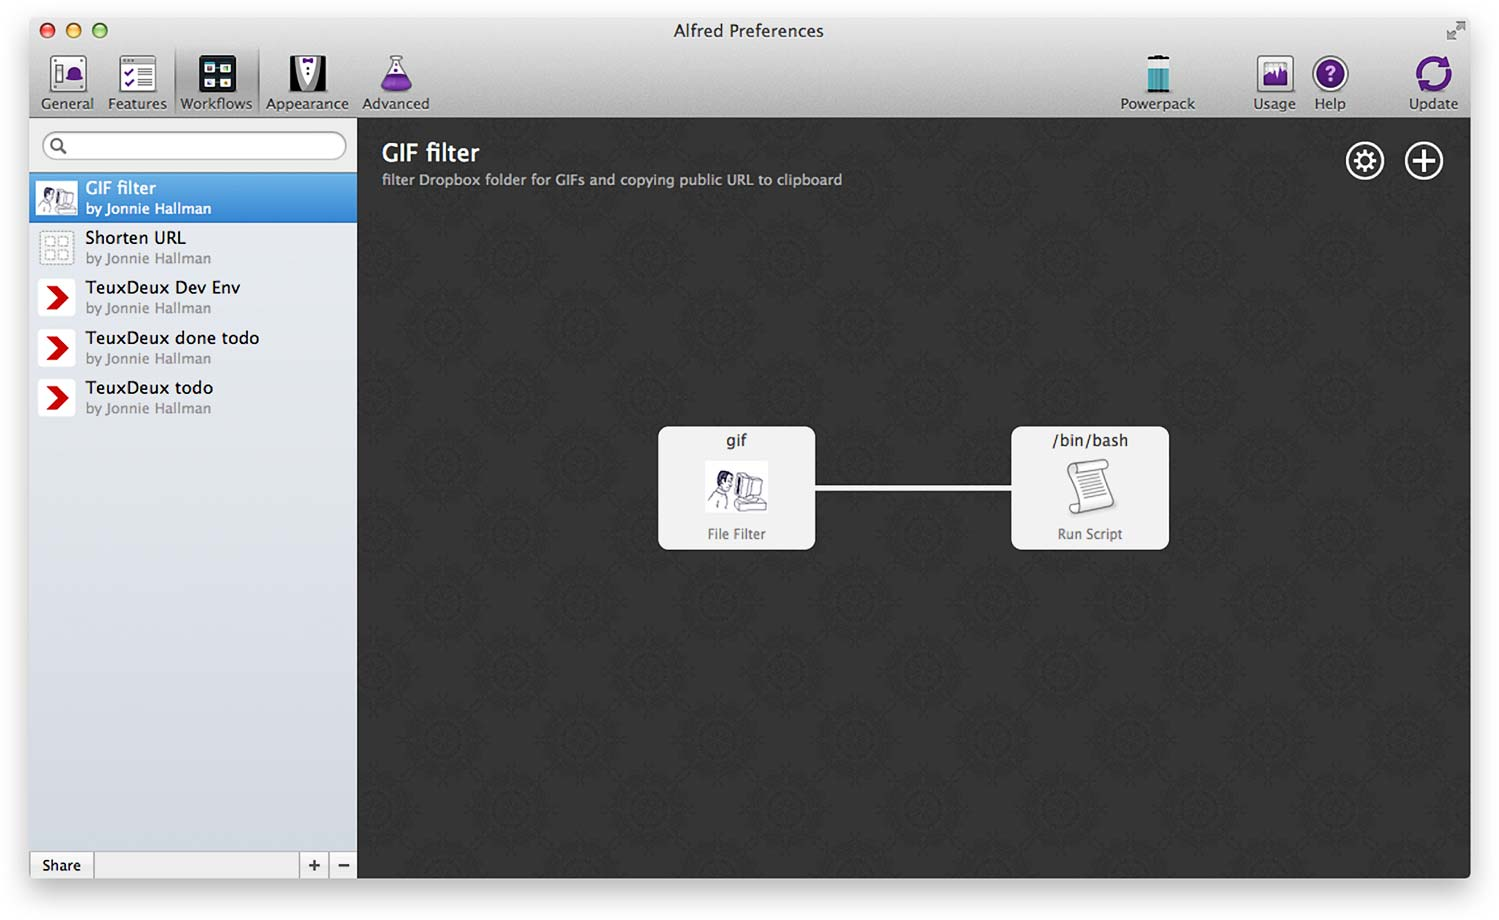 gif-workflow-alfred-workflow